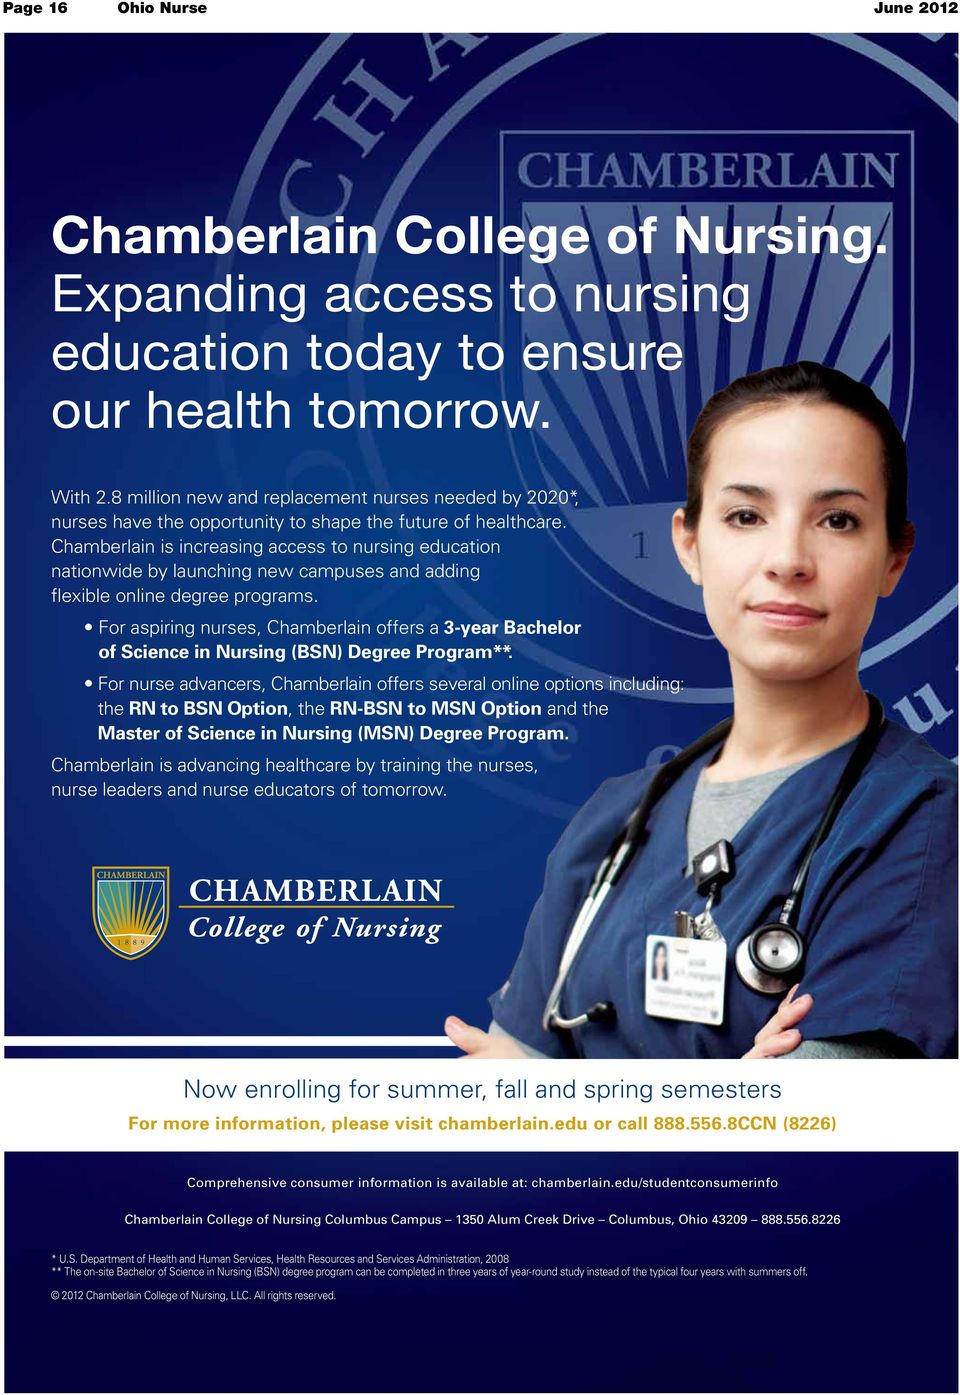 Chamberlain is increasing access to nursing education nationwide by launching new campuses and adding flexible online degree programs.